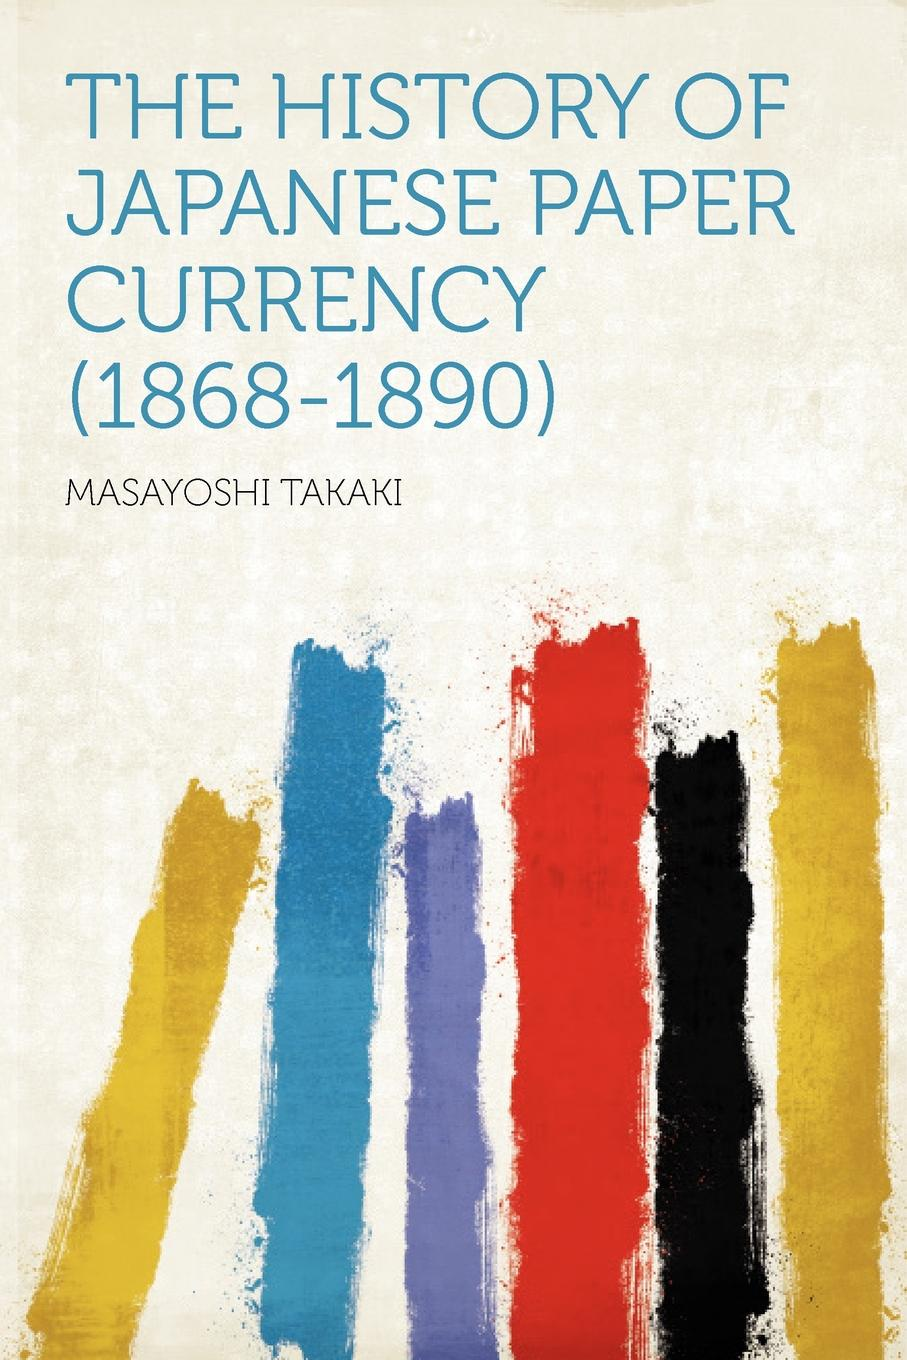 The History of Japanese Paper Currency (1868-1890)